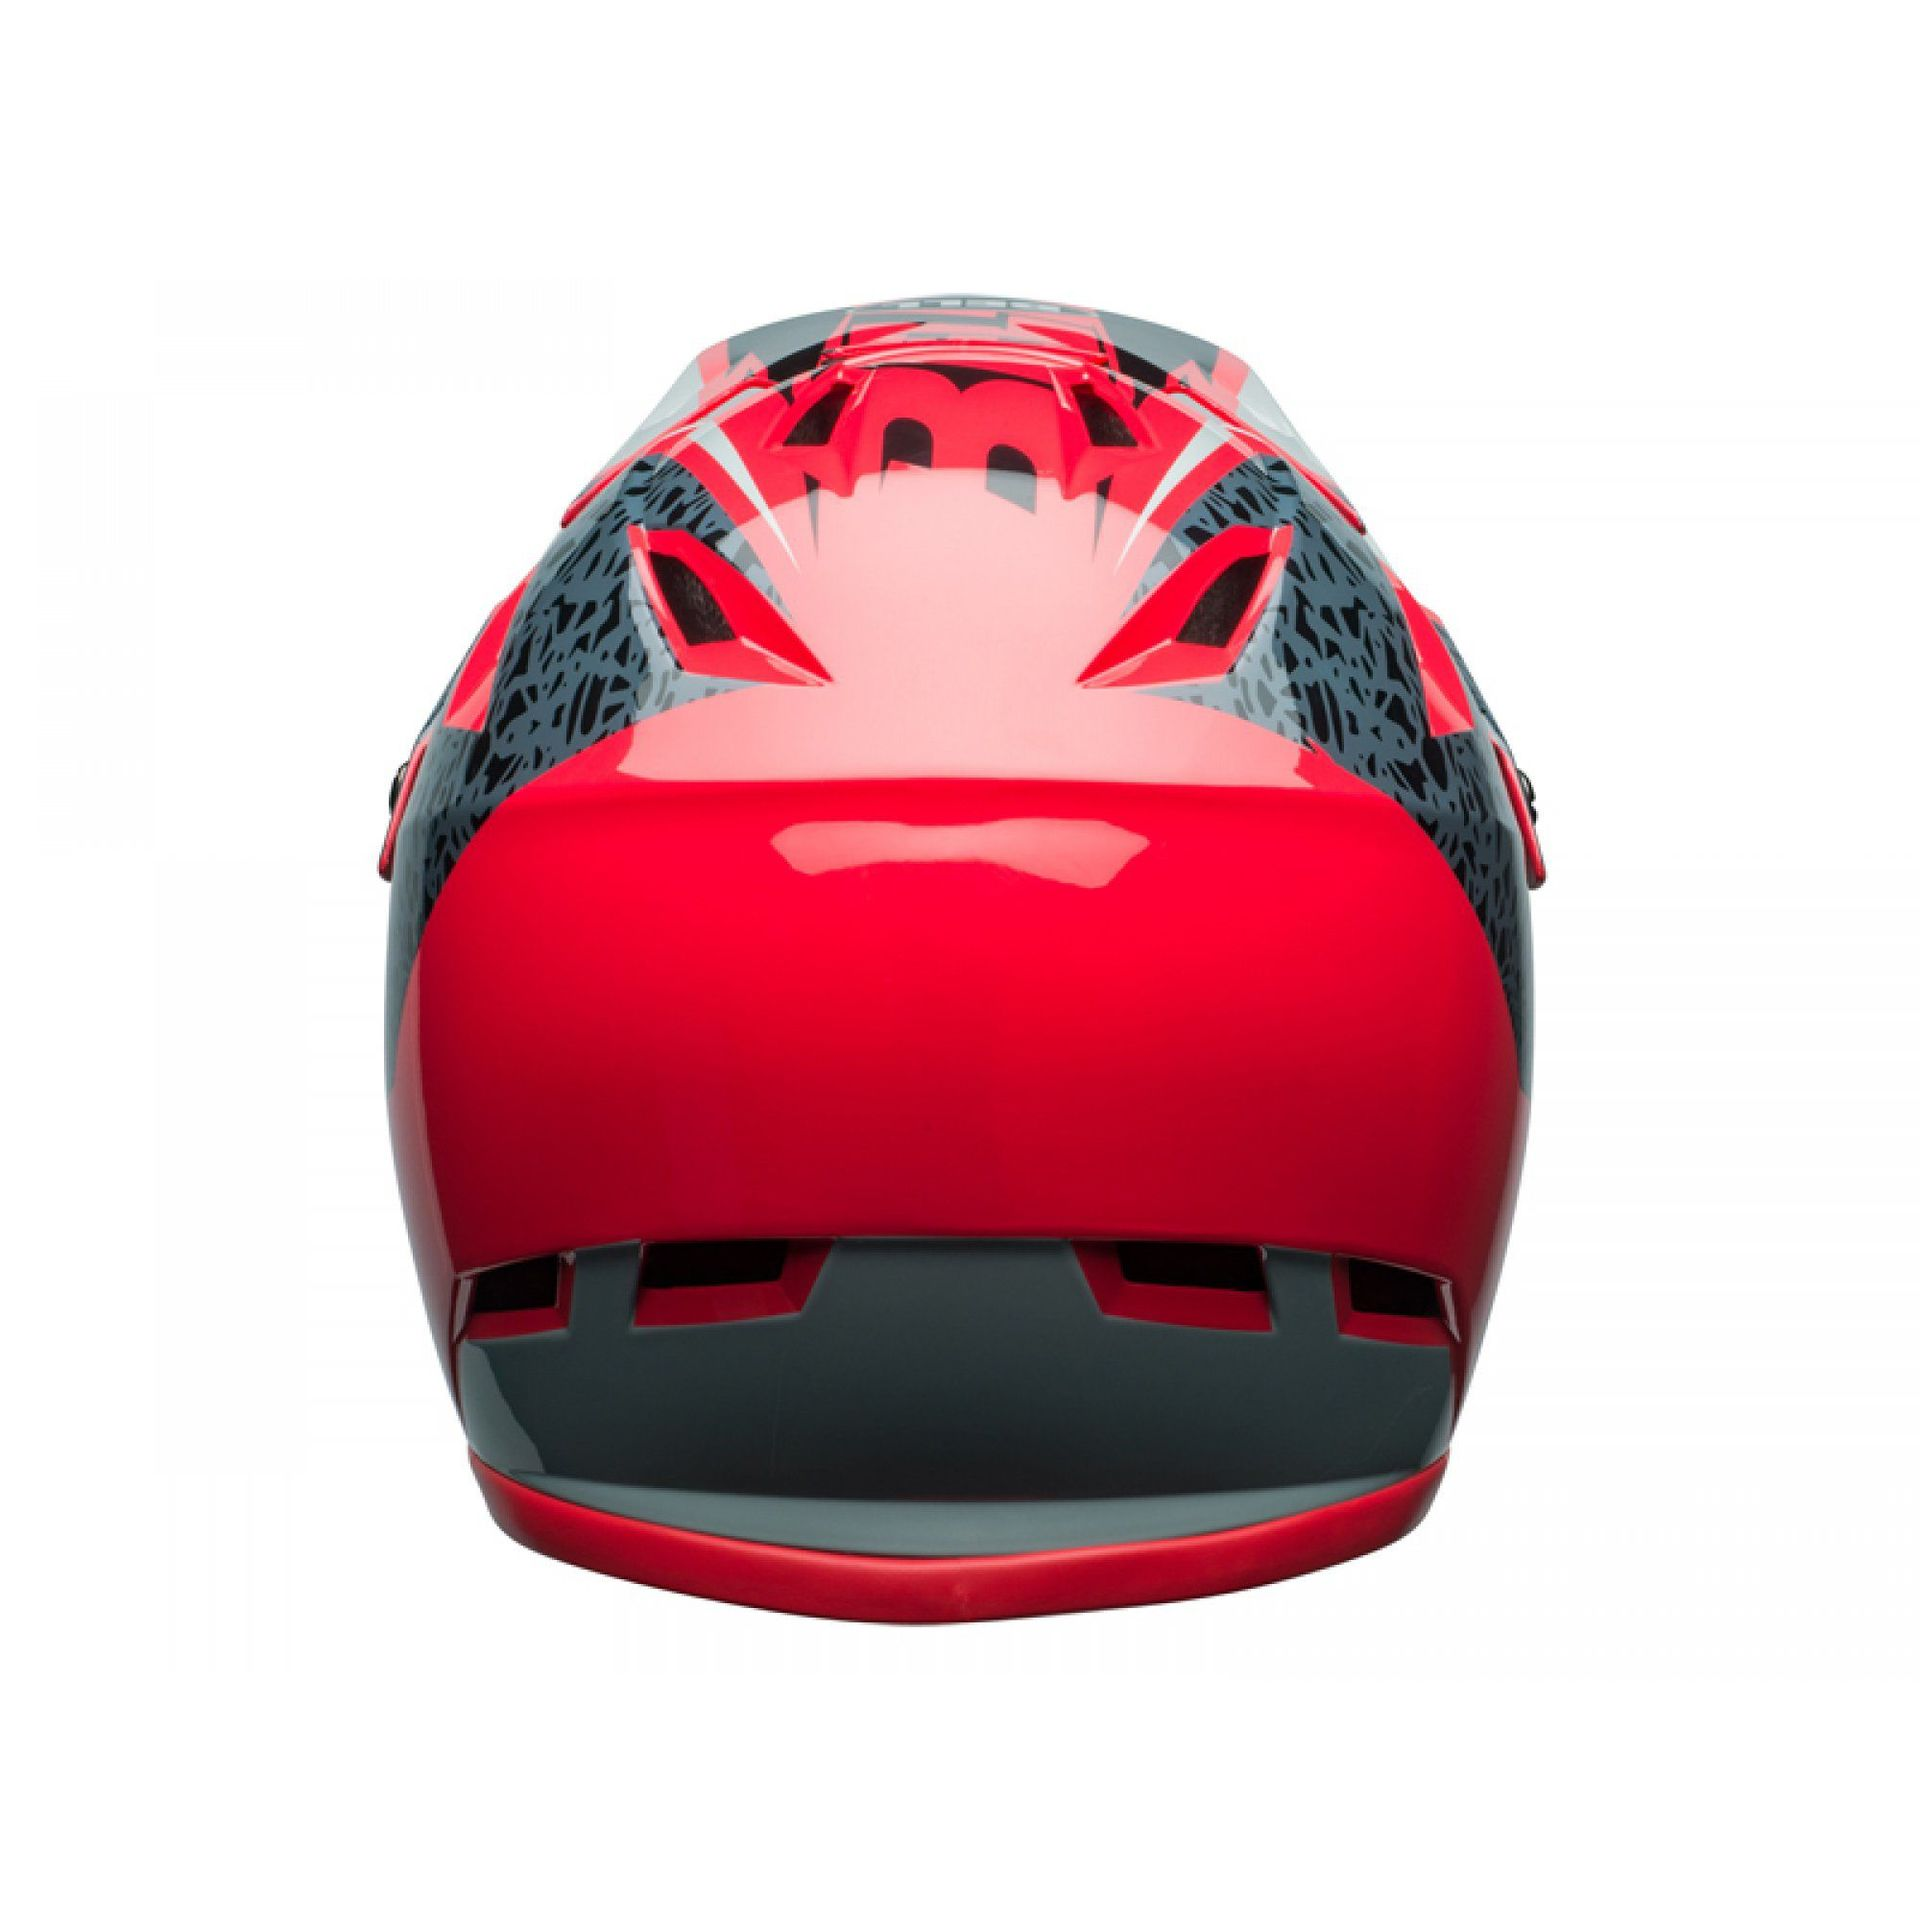 KASK ROWEROWY BELL SANCTION GLOSS HIBISCUS|SMOKE REPARATION 3